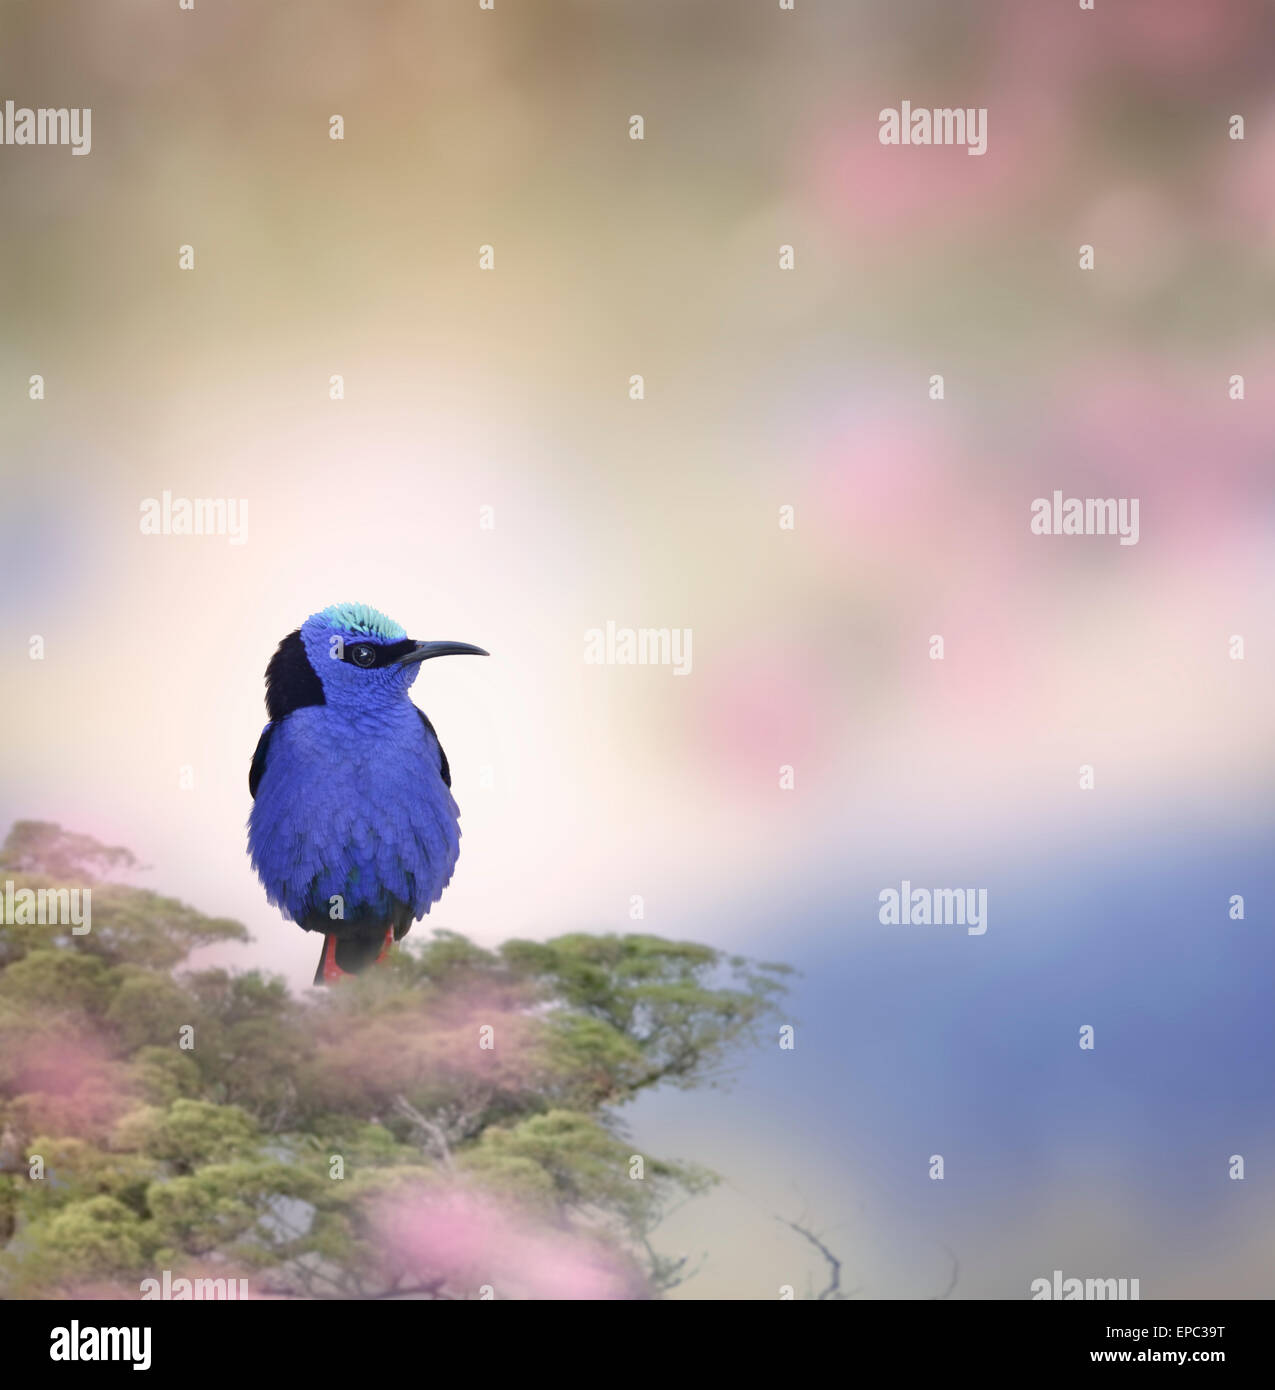 Honeycreeper Bird Perched On A Branch - Stock Image